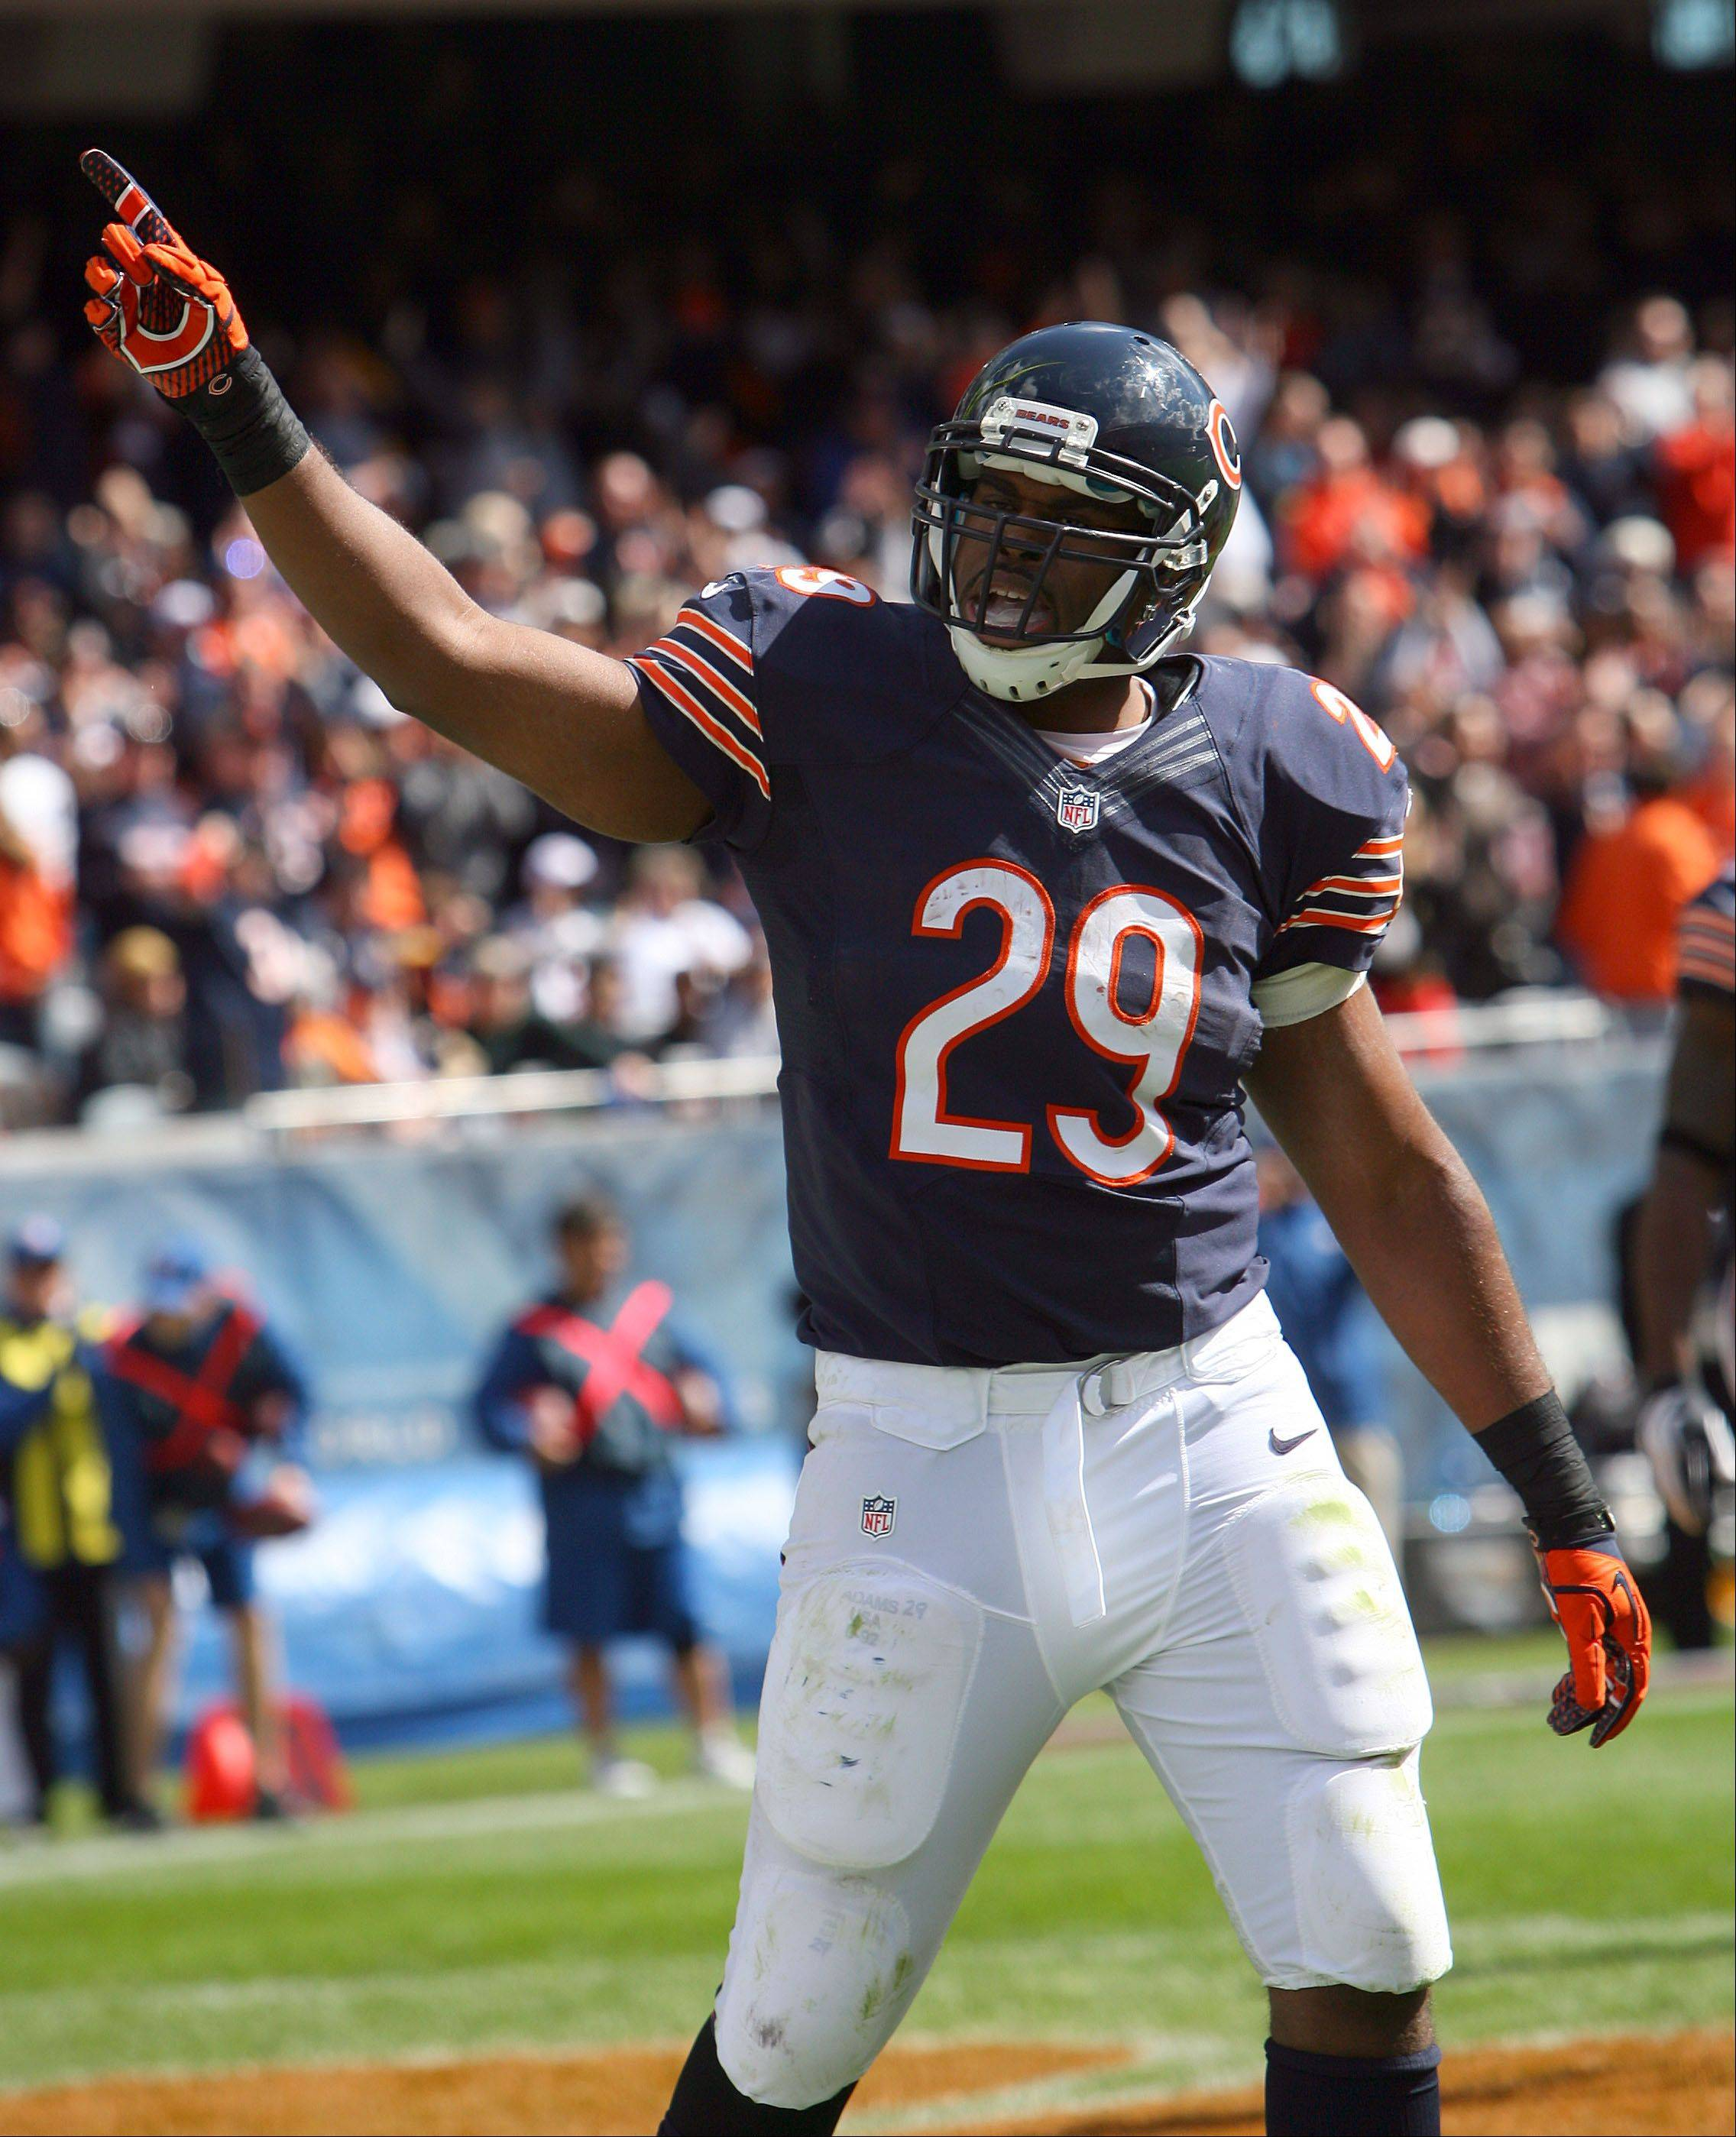 Chicago Bears running back Michael Bush points to the crowd after scoring in the first half against the St. Louis Rams Sunday at Soldier Field in Chicago.